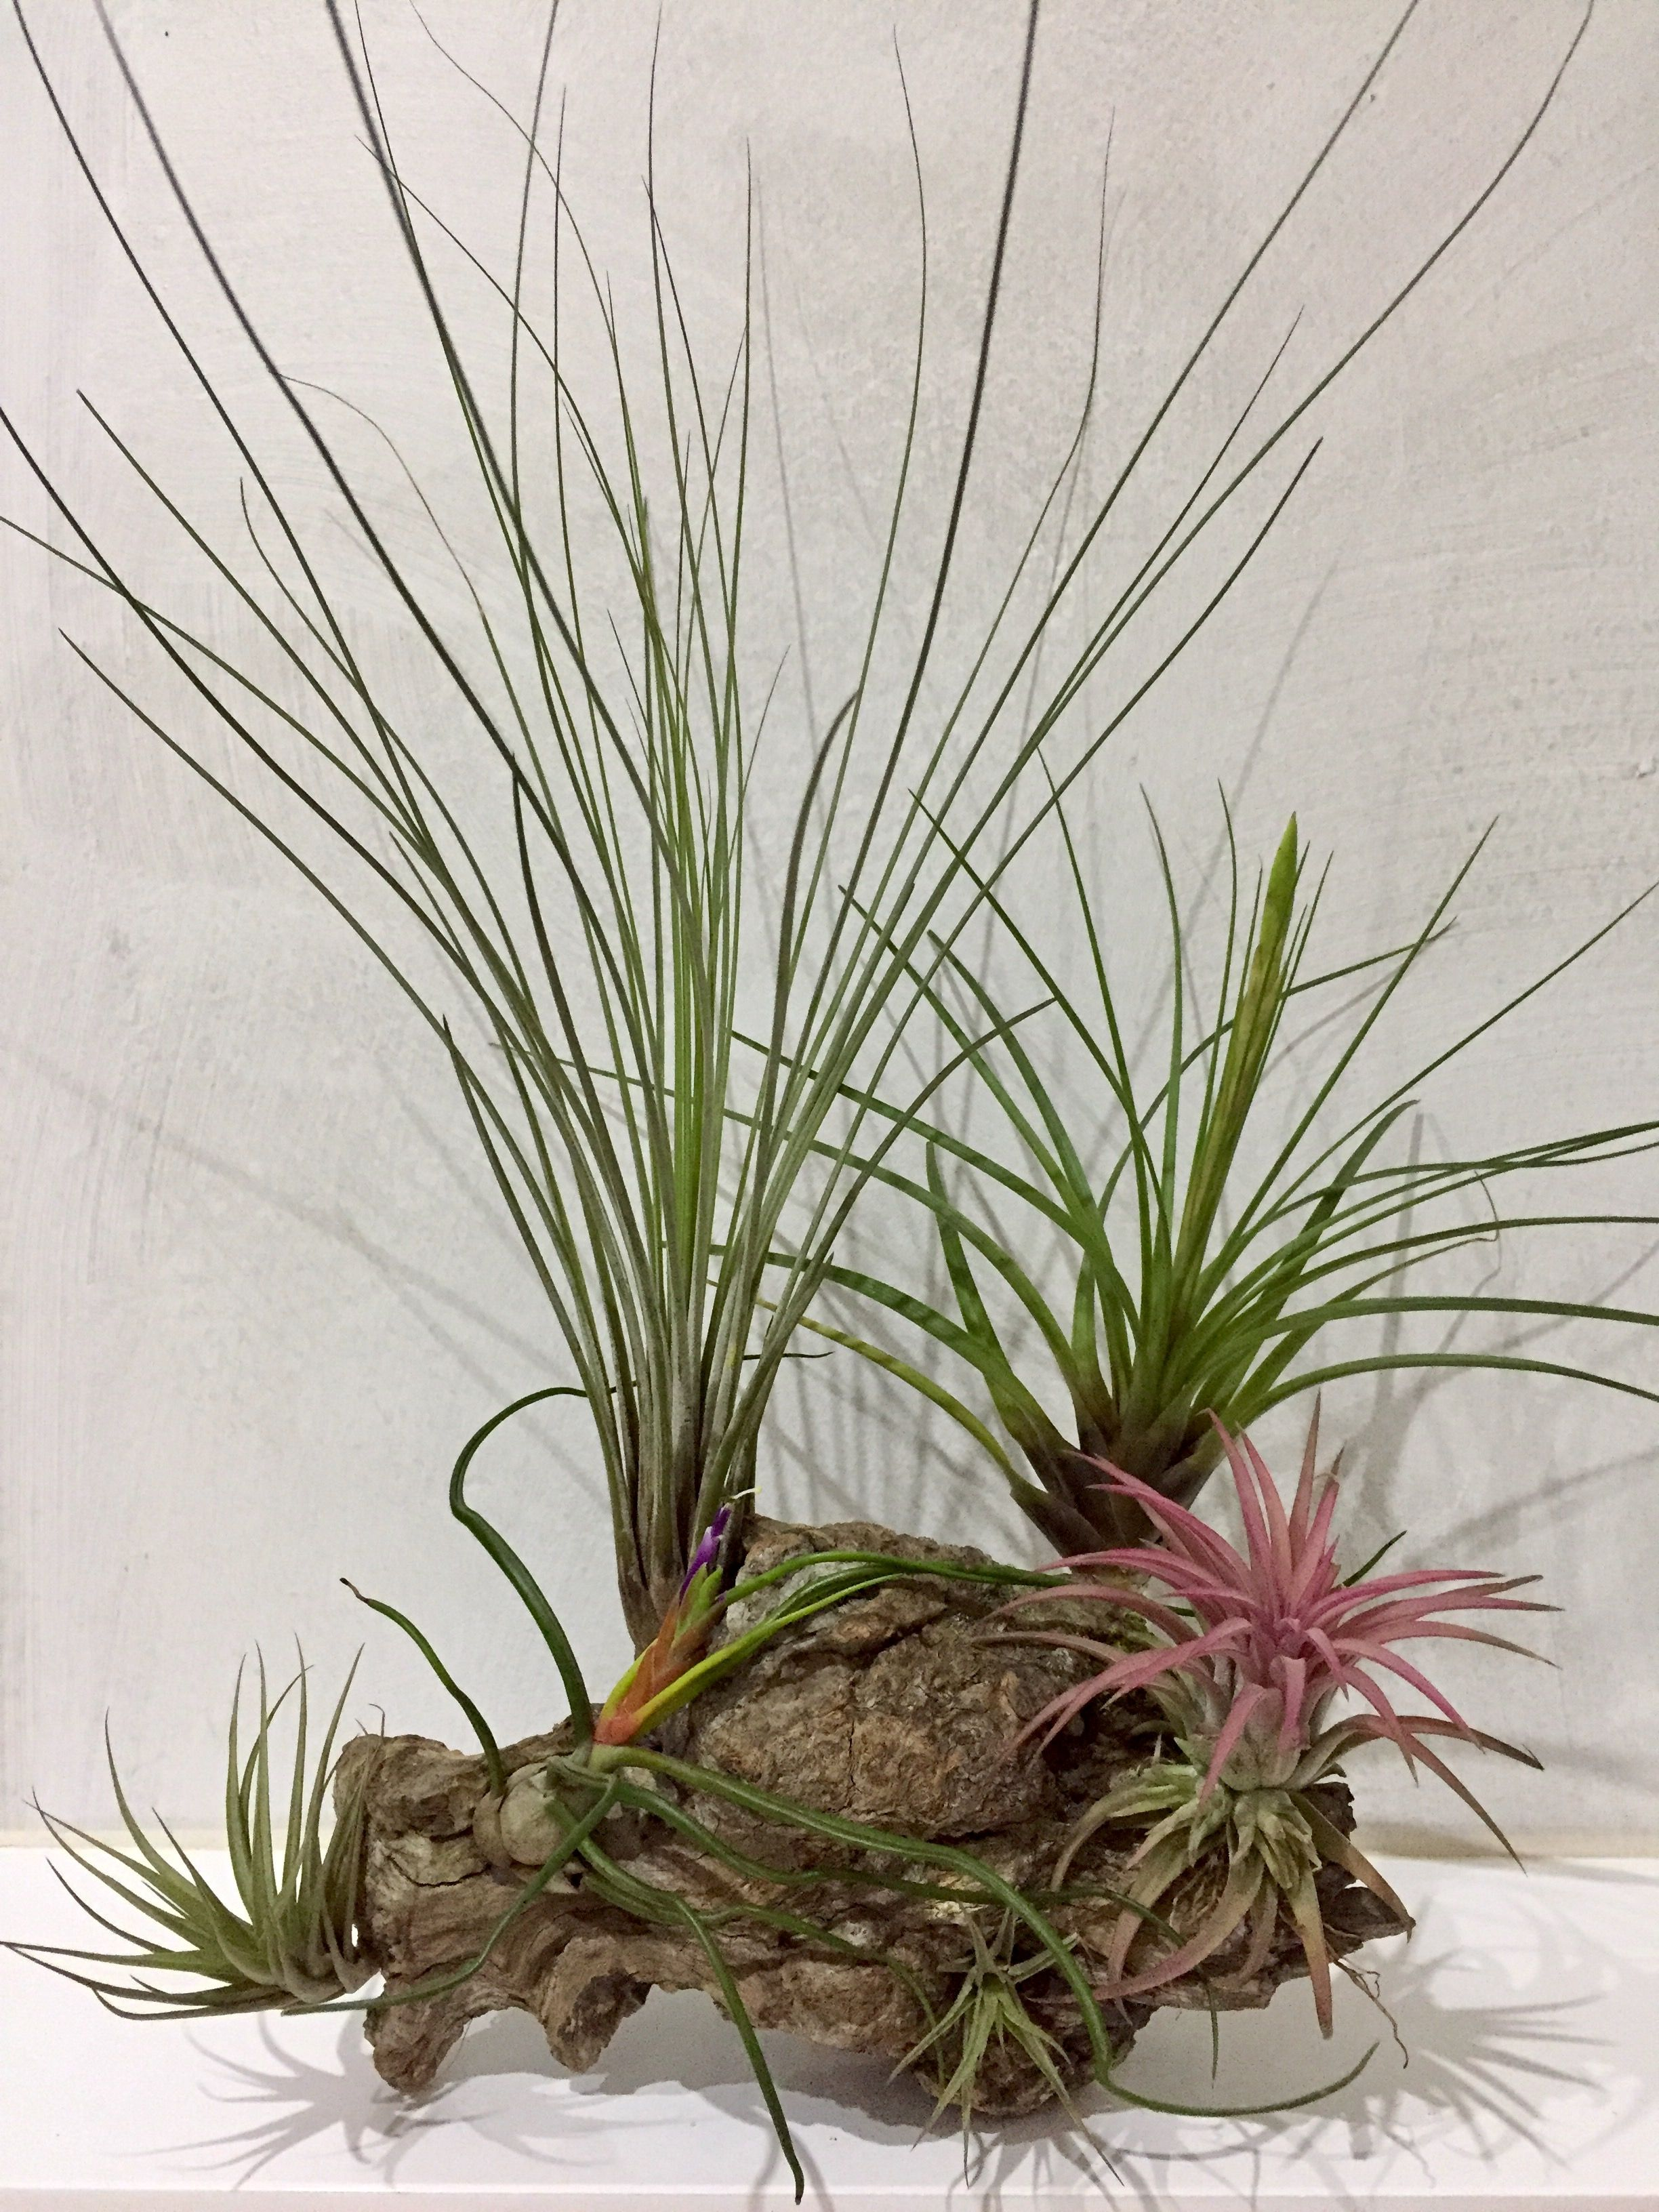 Pin By Narcis Guino On Tillandsia Pinterest Air Plants And Plants